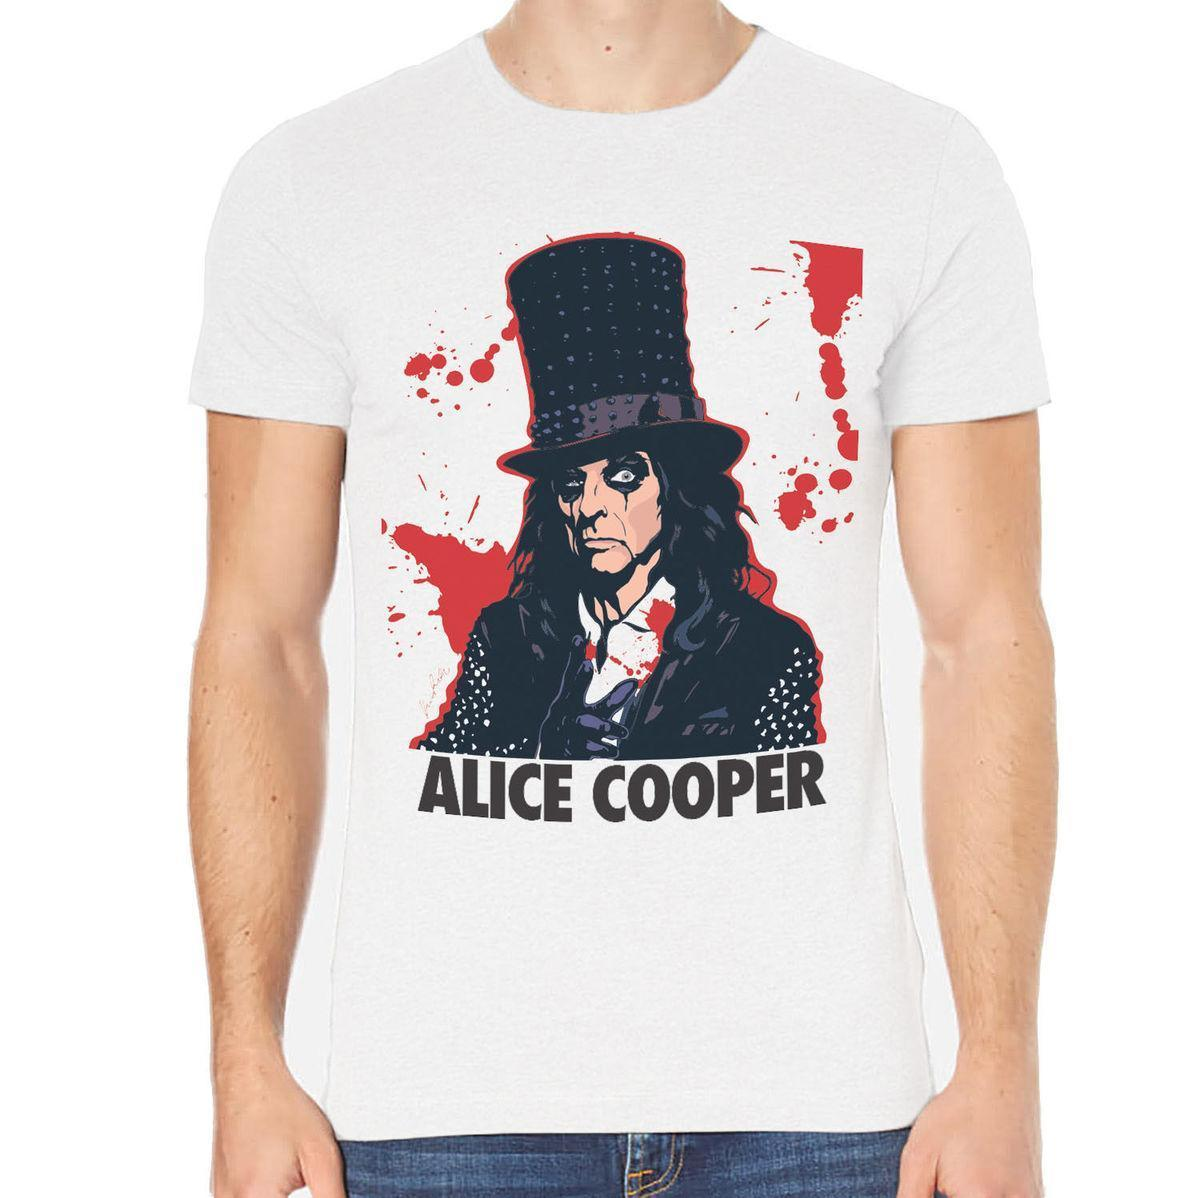 Maglietta Alice Cooper Rock T-Shirt Uomo Summer Summer O-Neck Hipster Top t-top